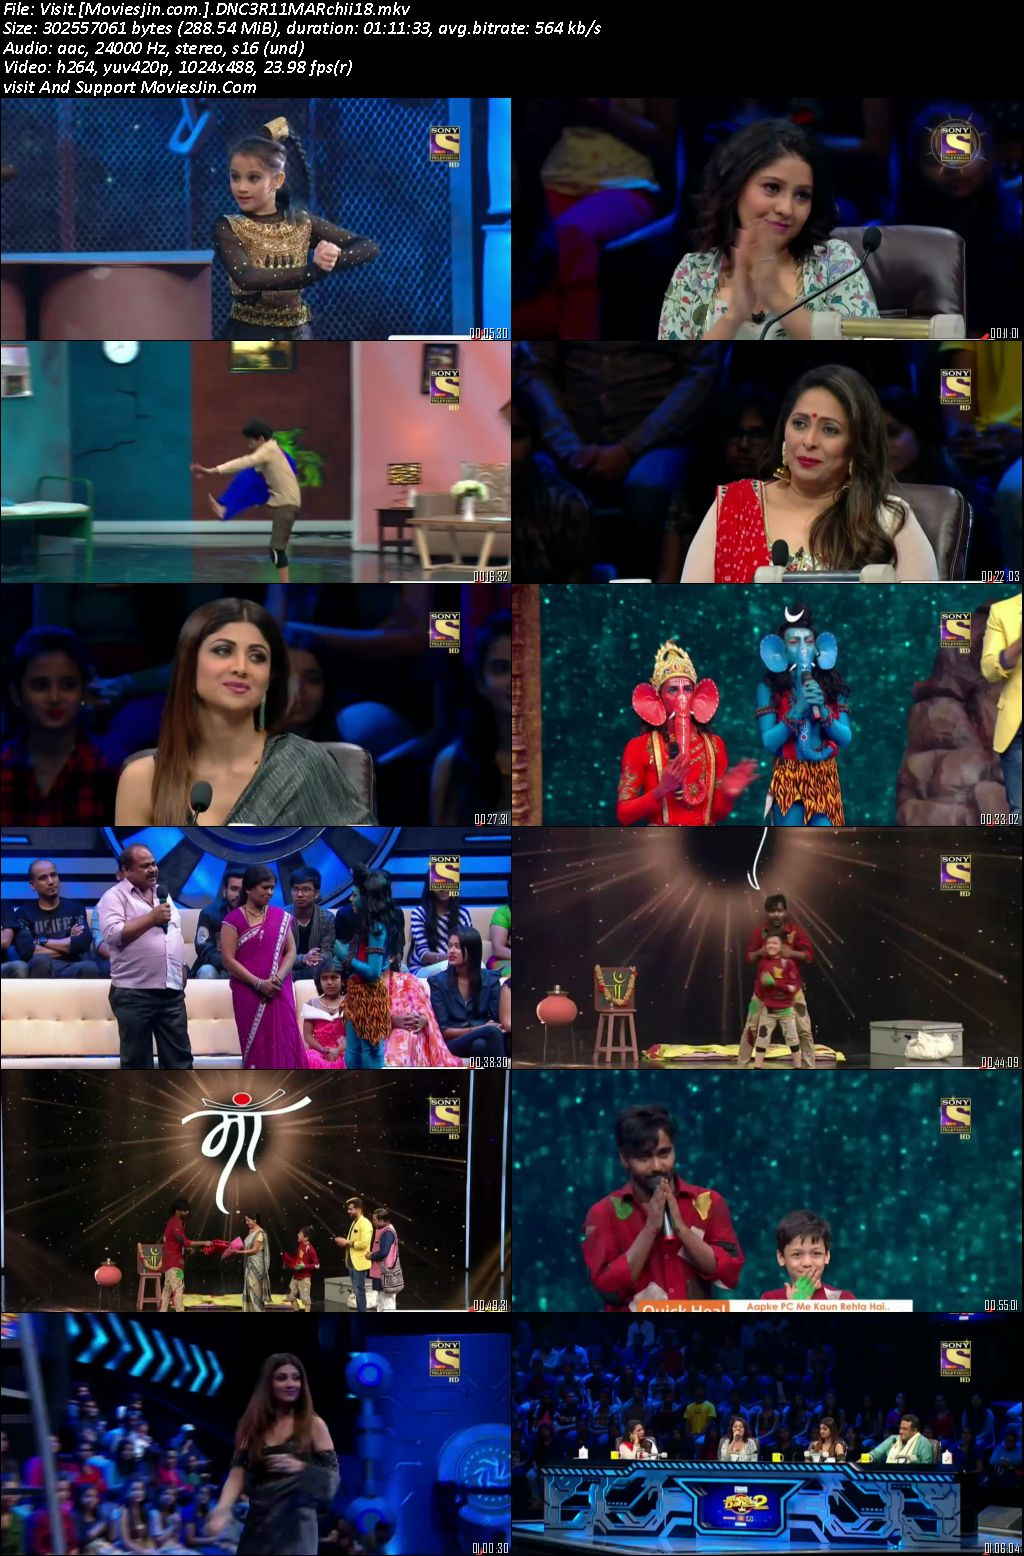 Super Dancer Chapter 02 11 March 2018 HD 280MB 480p TVRip